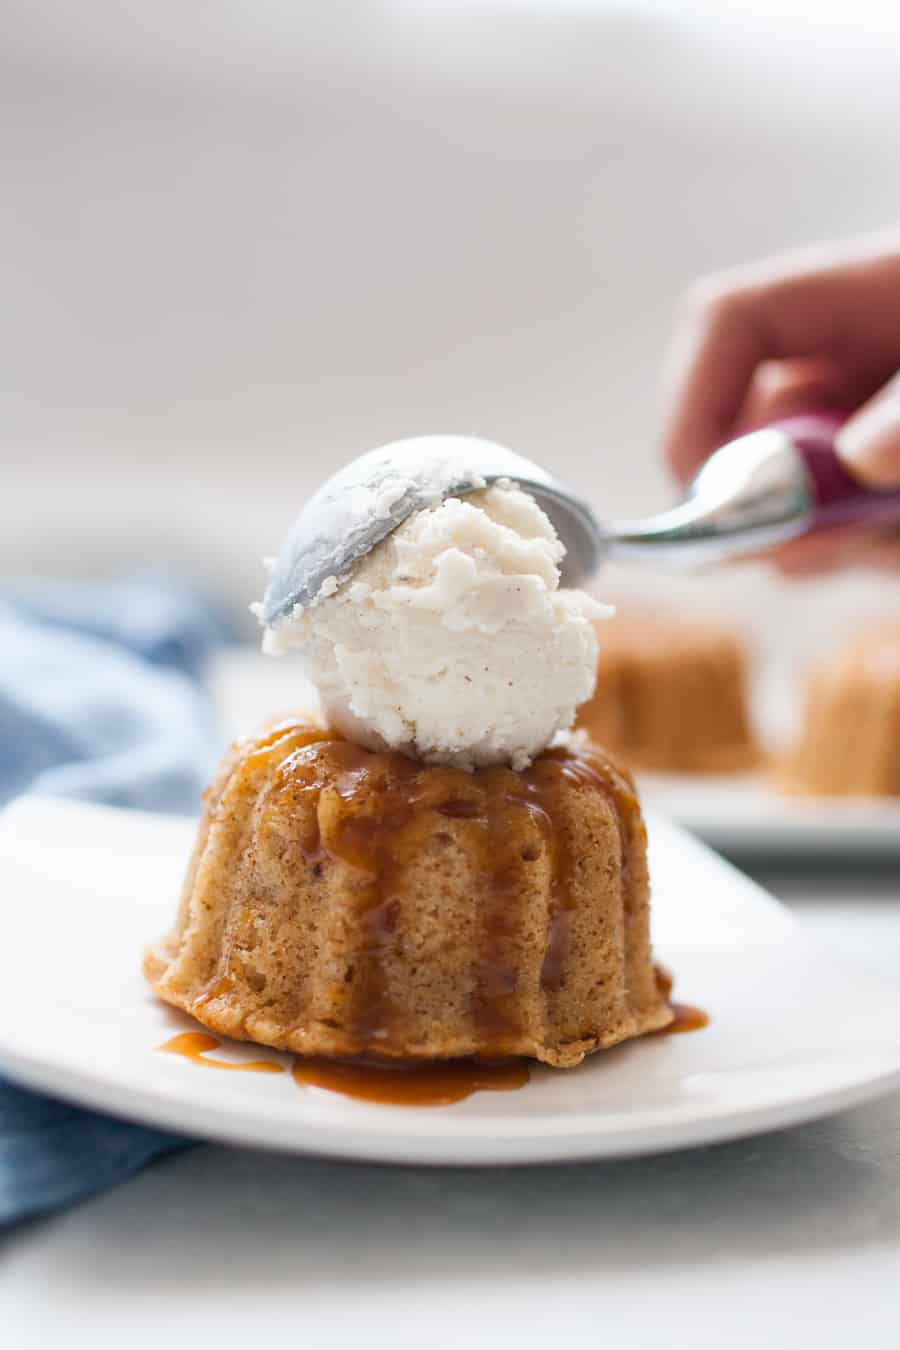 Scooping vanilla bean ice cream onto a mini spiced bundt cake sitting on a white square plate.